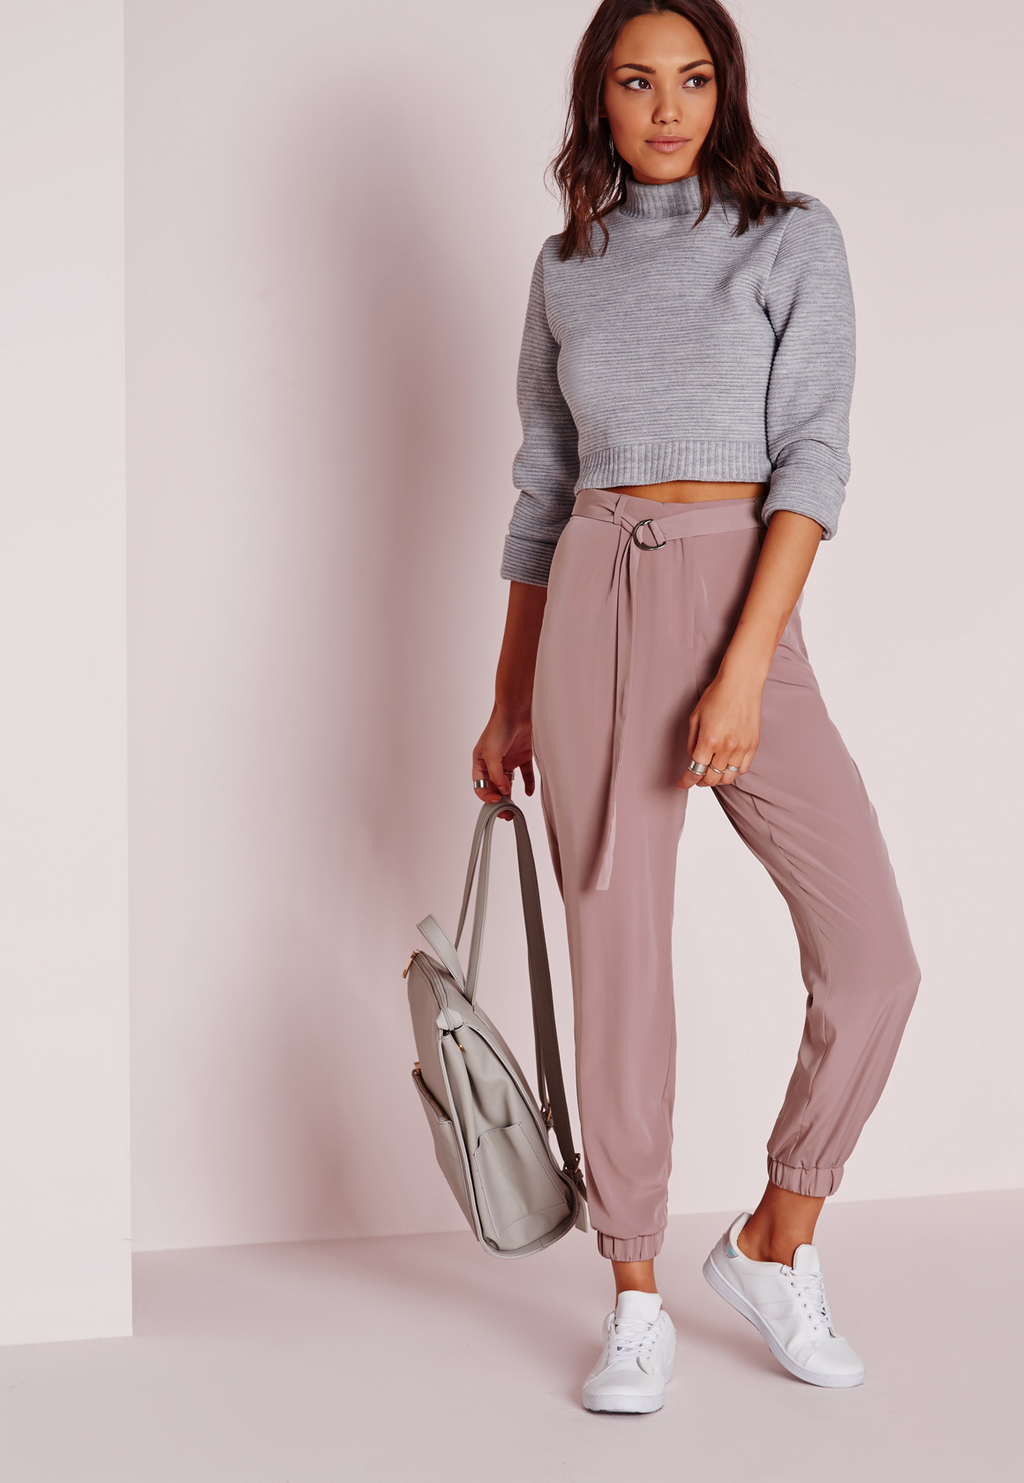 Belt Woven Joggers Rose Pink, Red - pattern: plain; style: tracksuit pants; waist: high rise; waist detail: belted waist/tie at waist/drawstring; predominant colour: pink; occasions: casual; length: ankle length; fibres: polyester/polyamide - 100%; texture group: crepes; fit: baggy; pattern type: fabric; pattern size: standard (bottom); season: s/s 2016; wardrobe: highlight